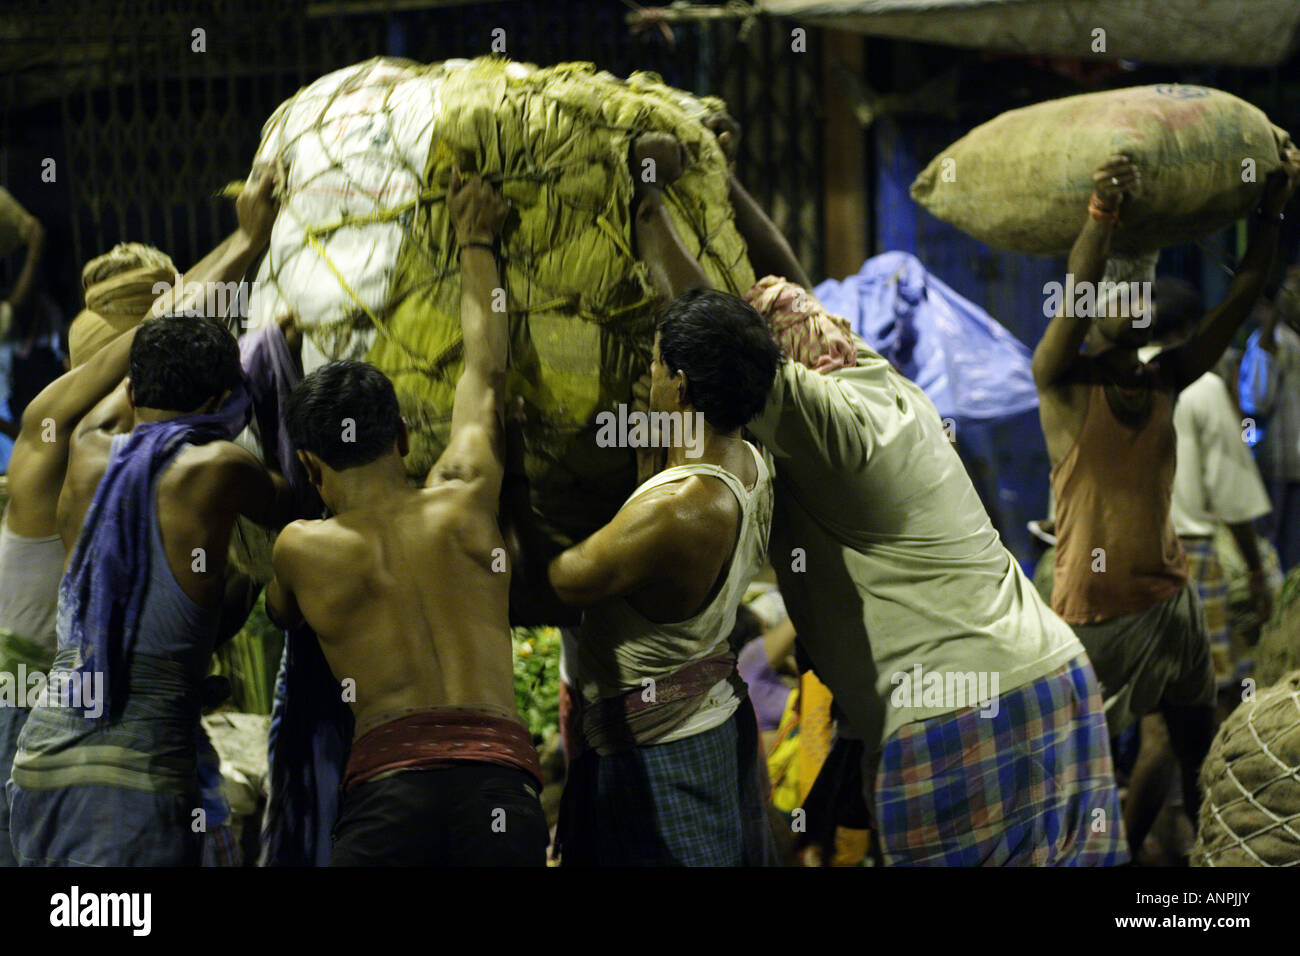 Men lift a heavy weight at the wholesale market for fruit and vegetables in Kolkata, India. - Stock Image